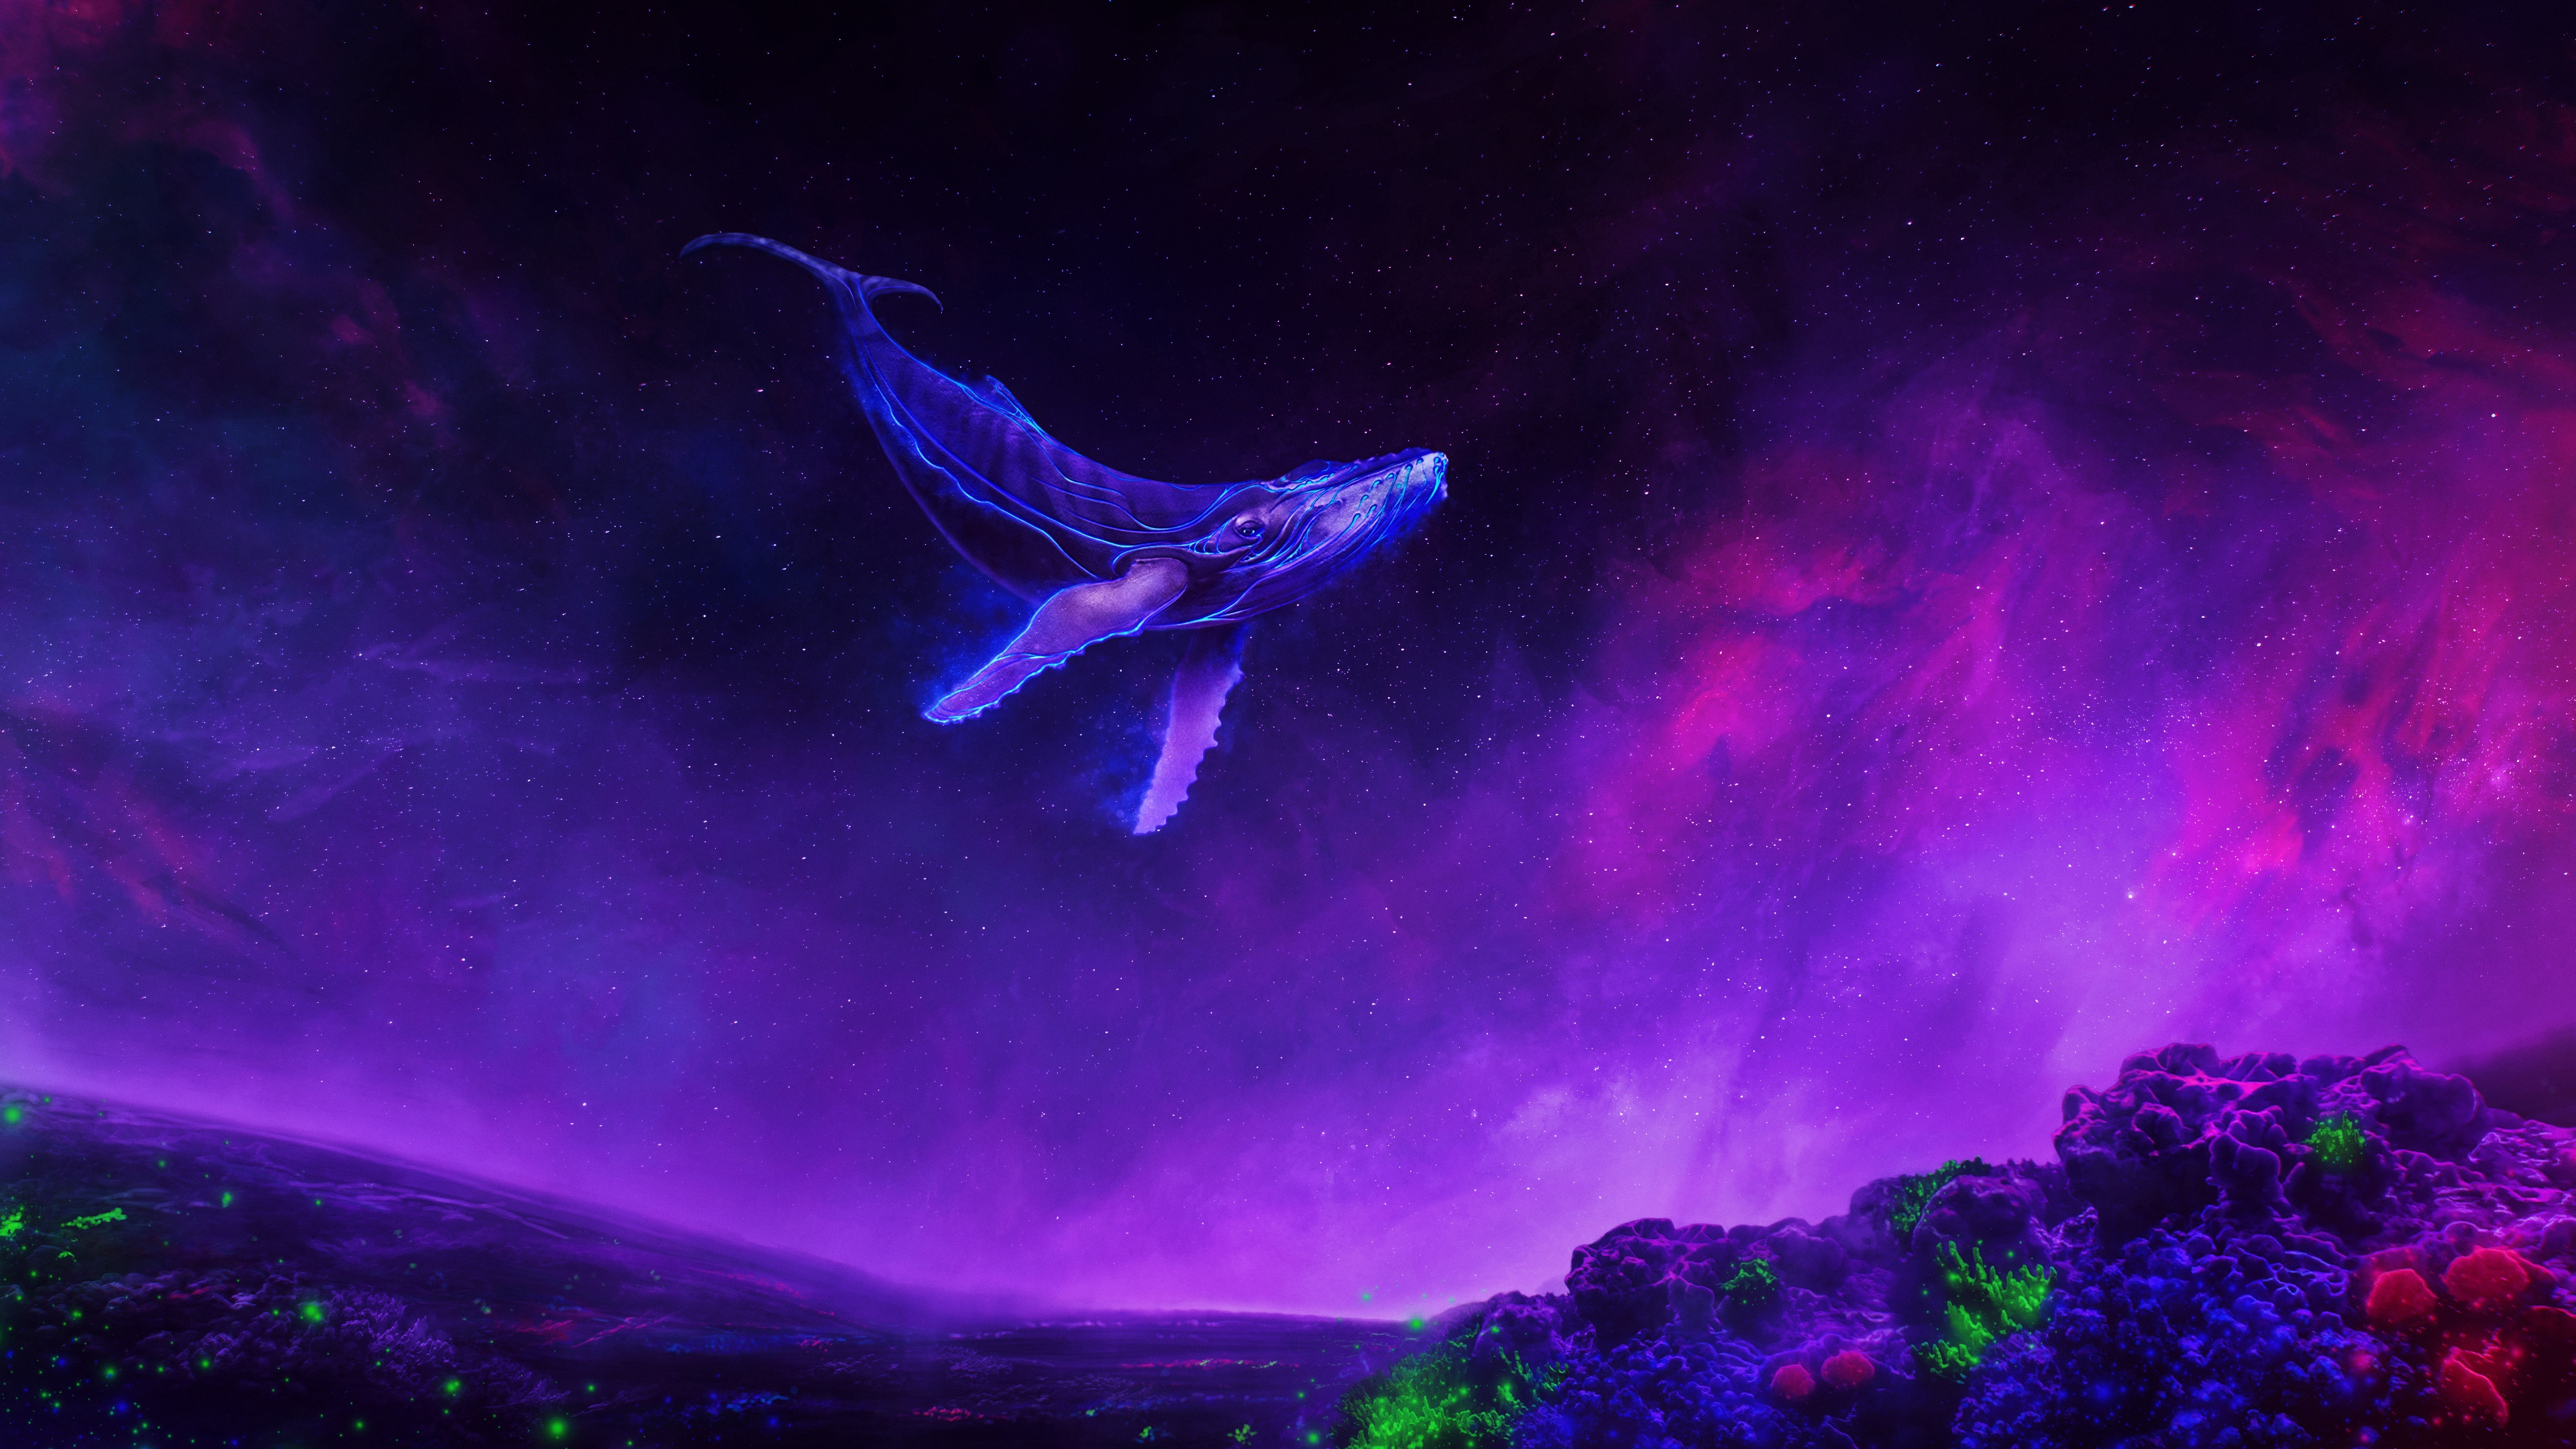 Nature Images Hd 3d Wallpapers Wallpaper Of Purple Sky Whale Animal Smoke Background